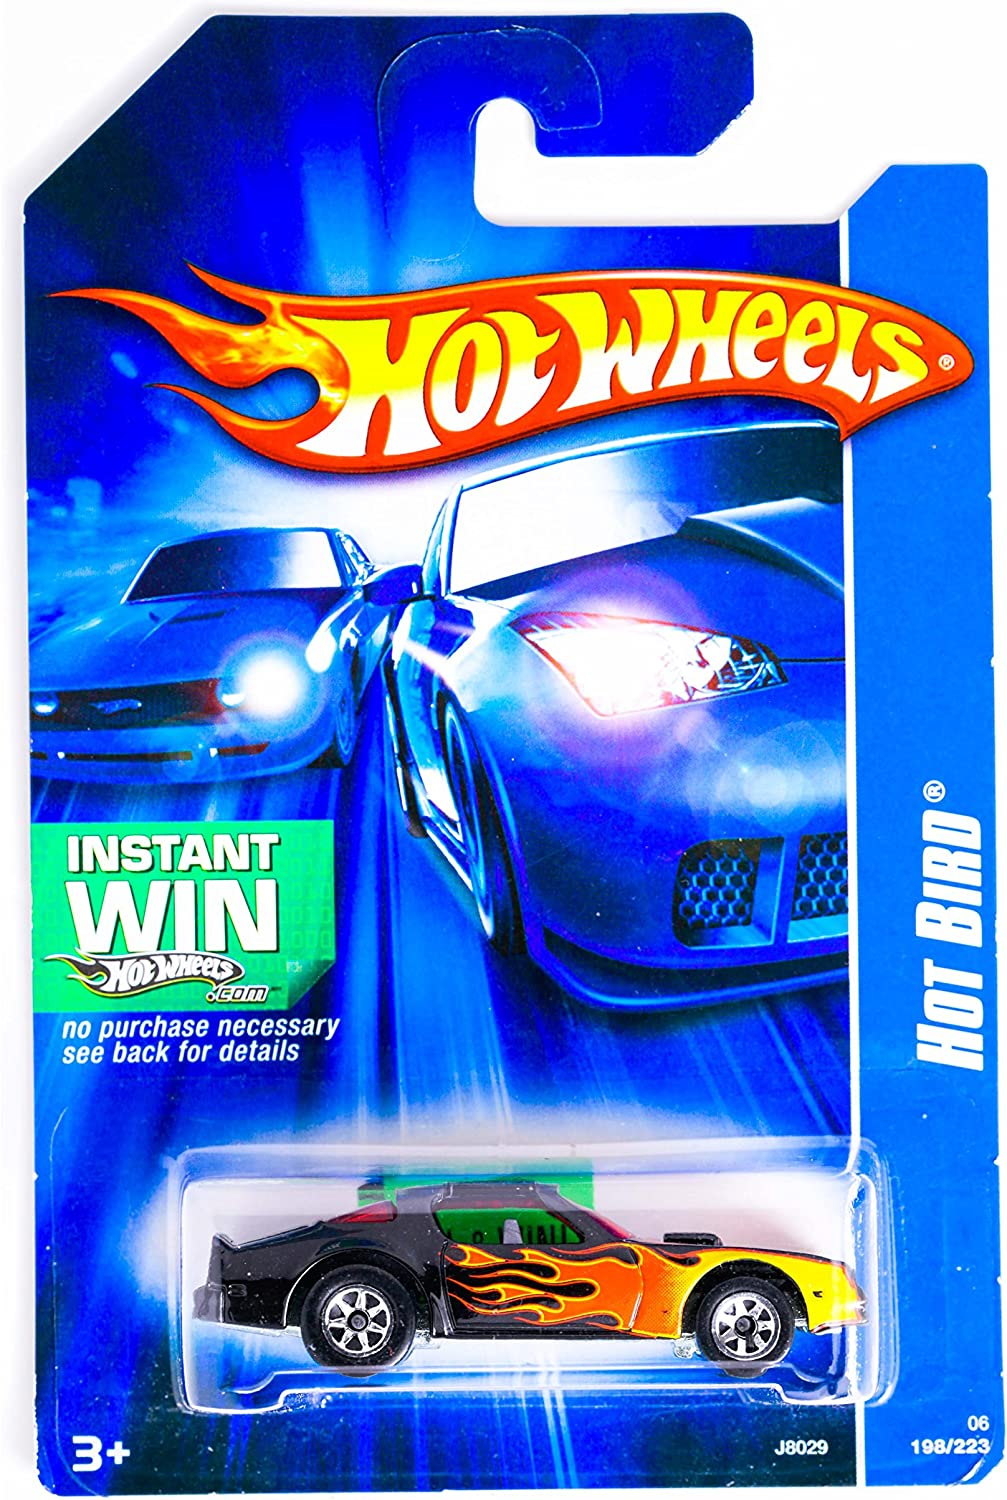 #2006-214 Poison Arrow Instant Win Card Collectible Collector Car Mattel Hot Wheels